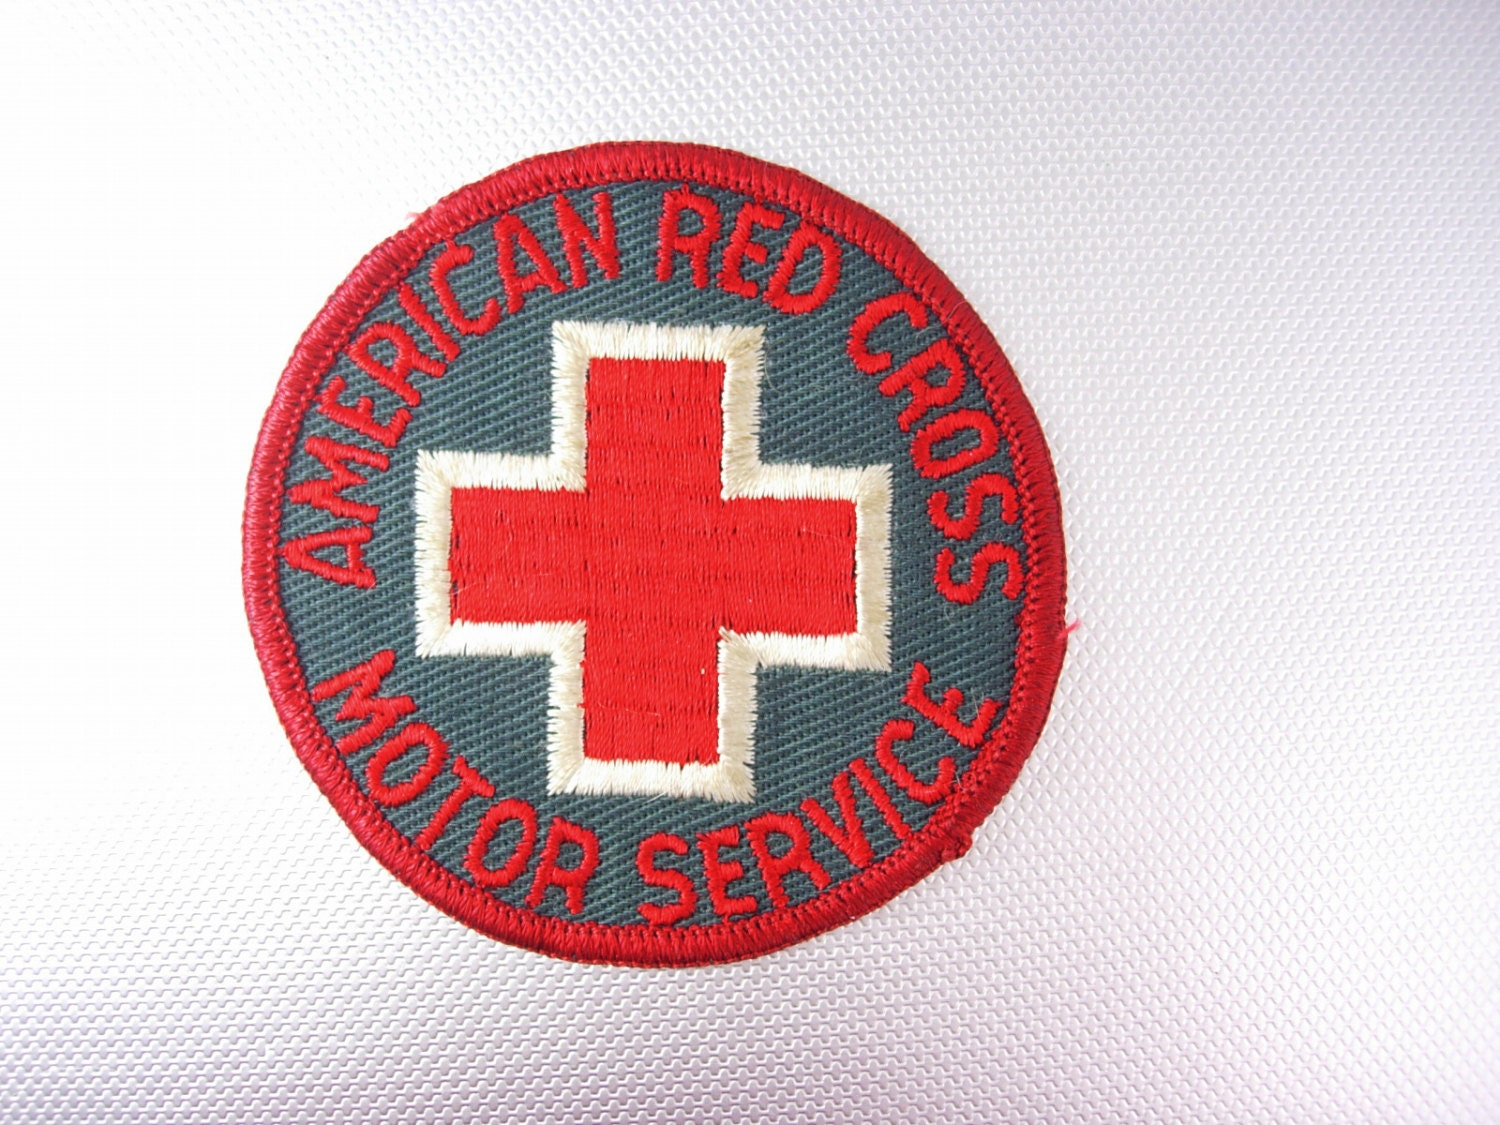 American Red Cross Motor Service Patch Vintage Birthday